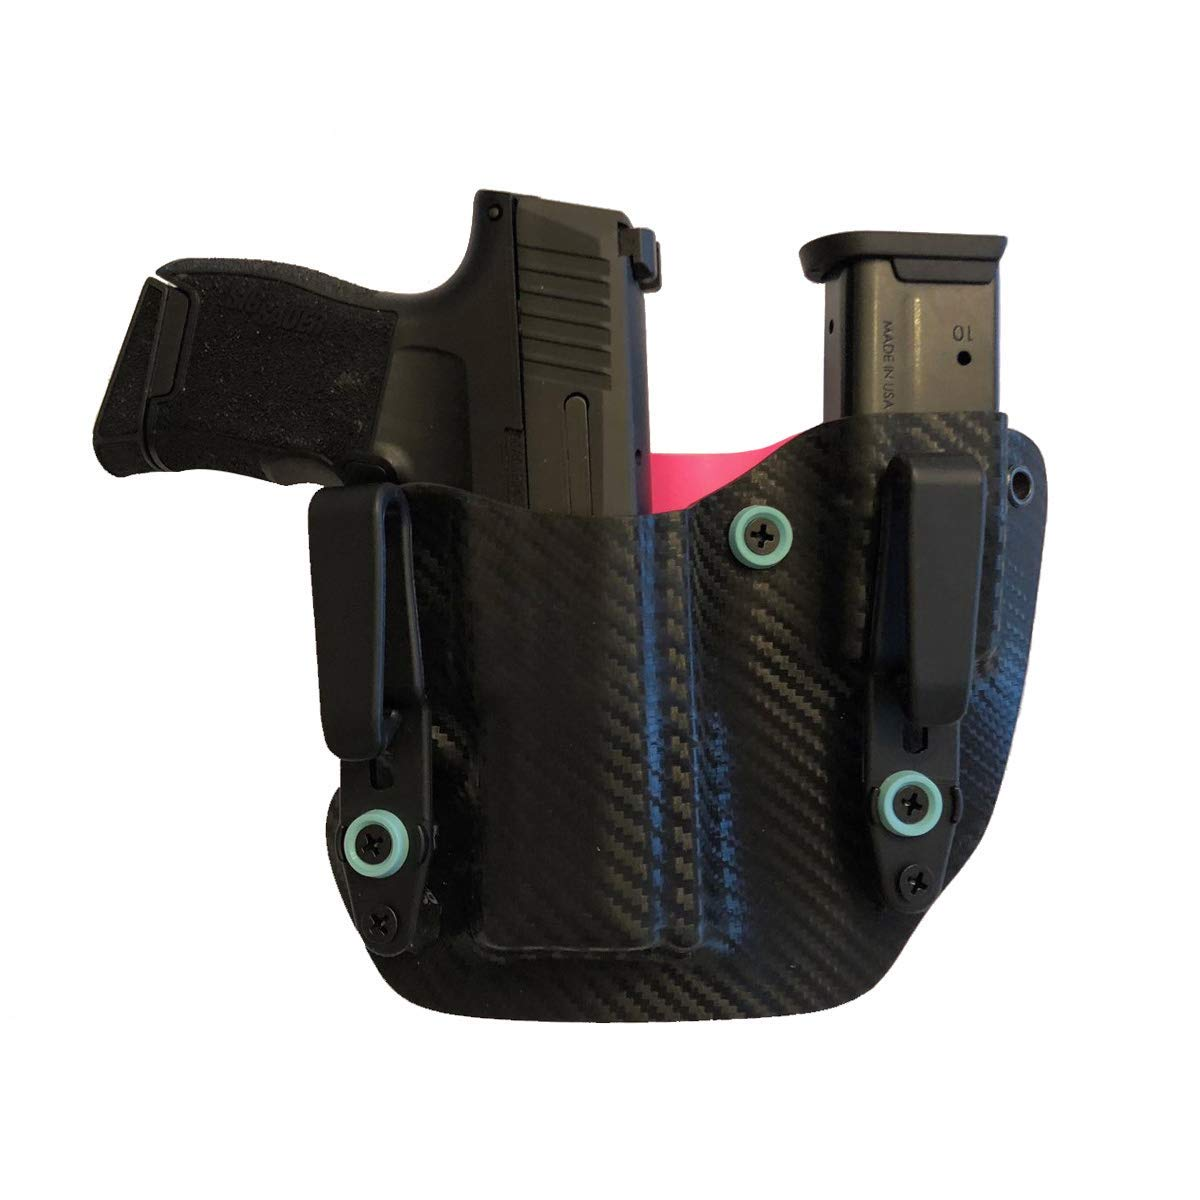 Elite Force Holsters Custom Combo 3. Springfield Classic XDS Special Campaign Holster for